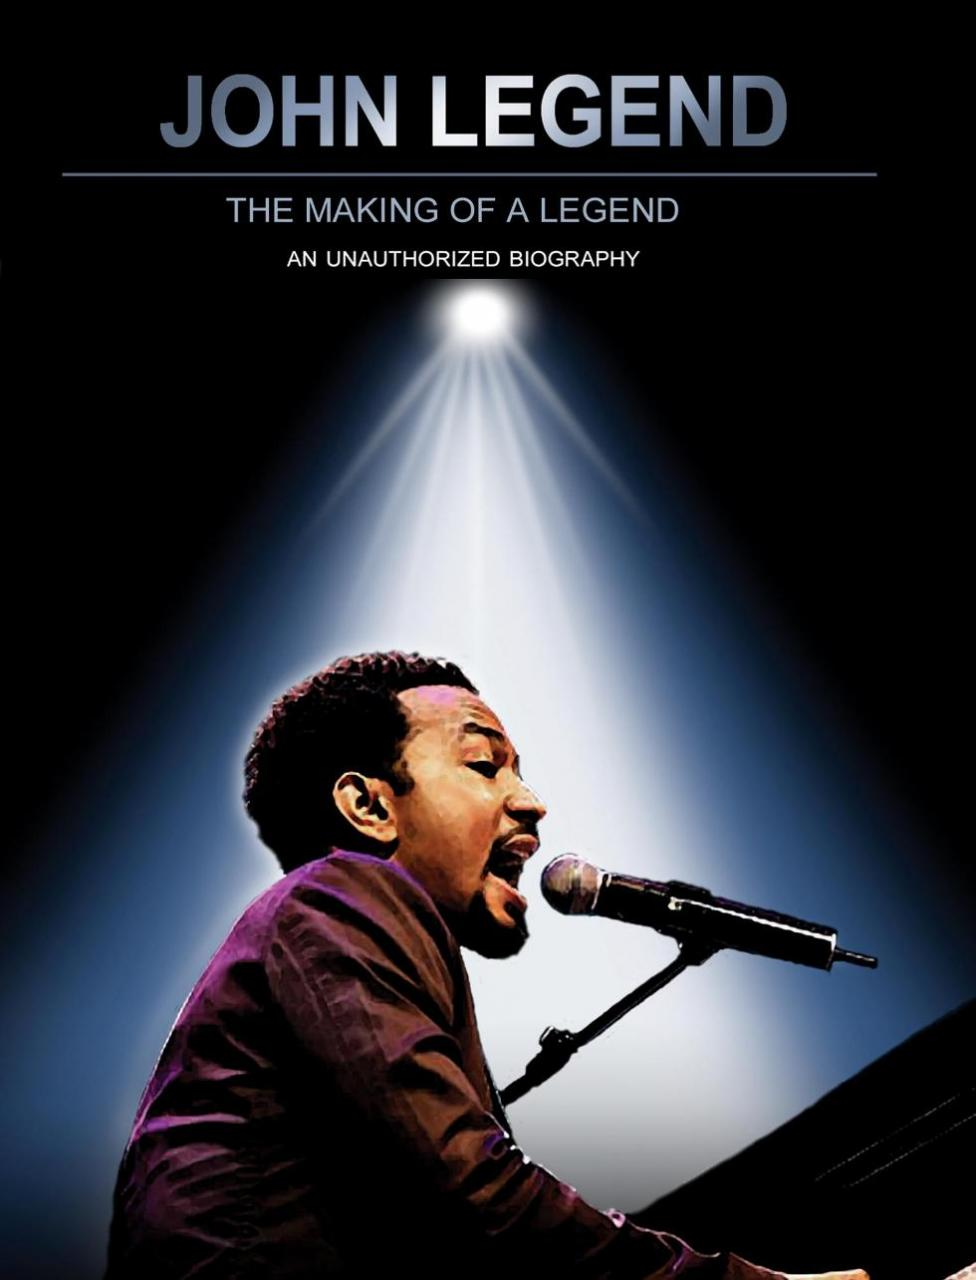 John Legend Making Of A Legend Unauthorized